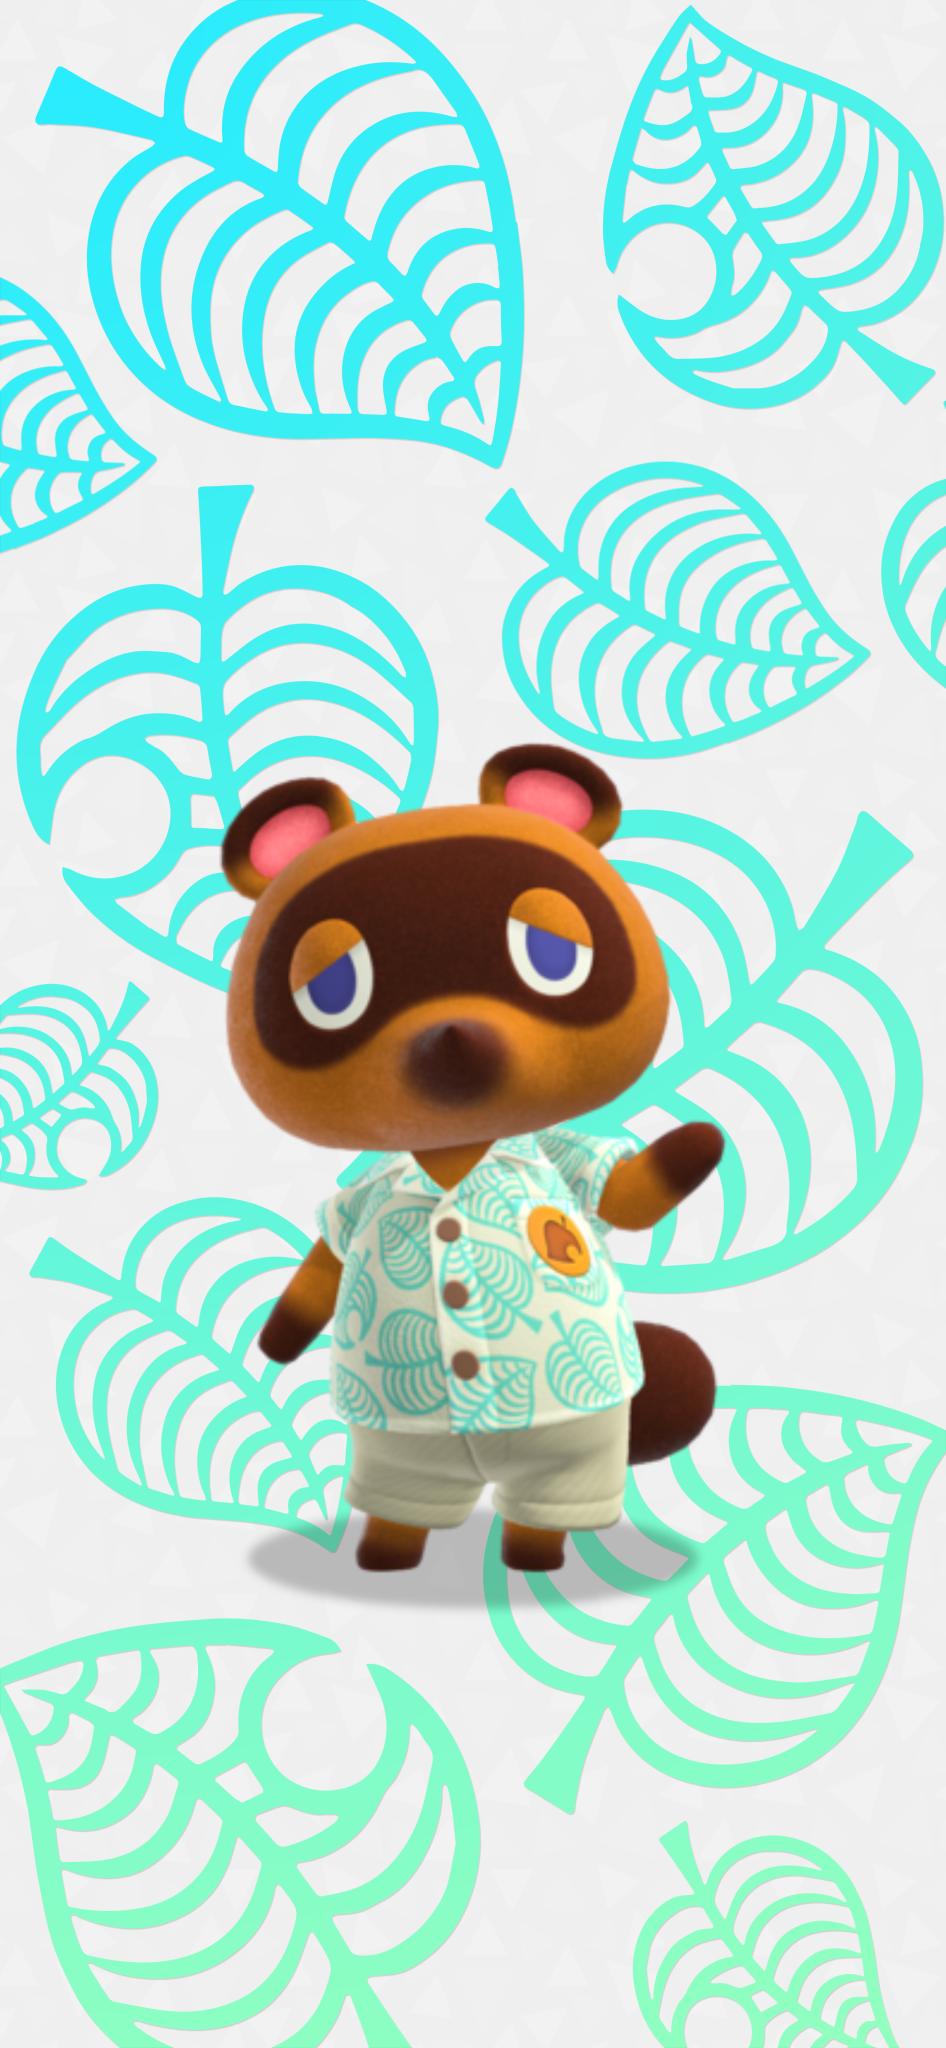 Pin On Wallpaper Backgrounds Animal Crossing Animal Crossing Characters Animal Wallpaper